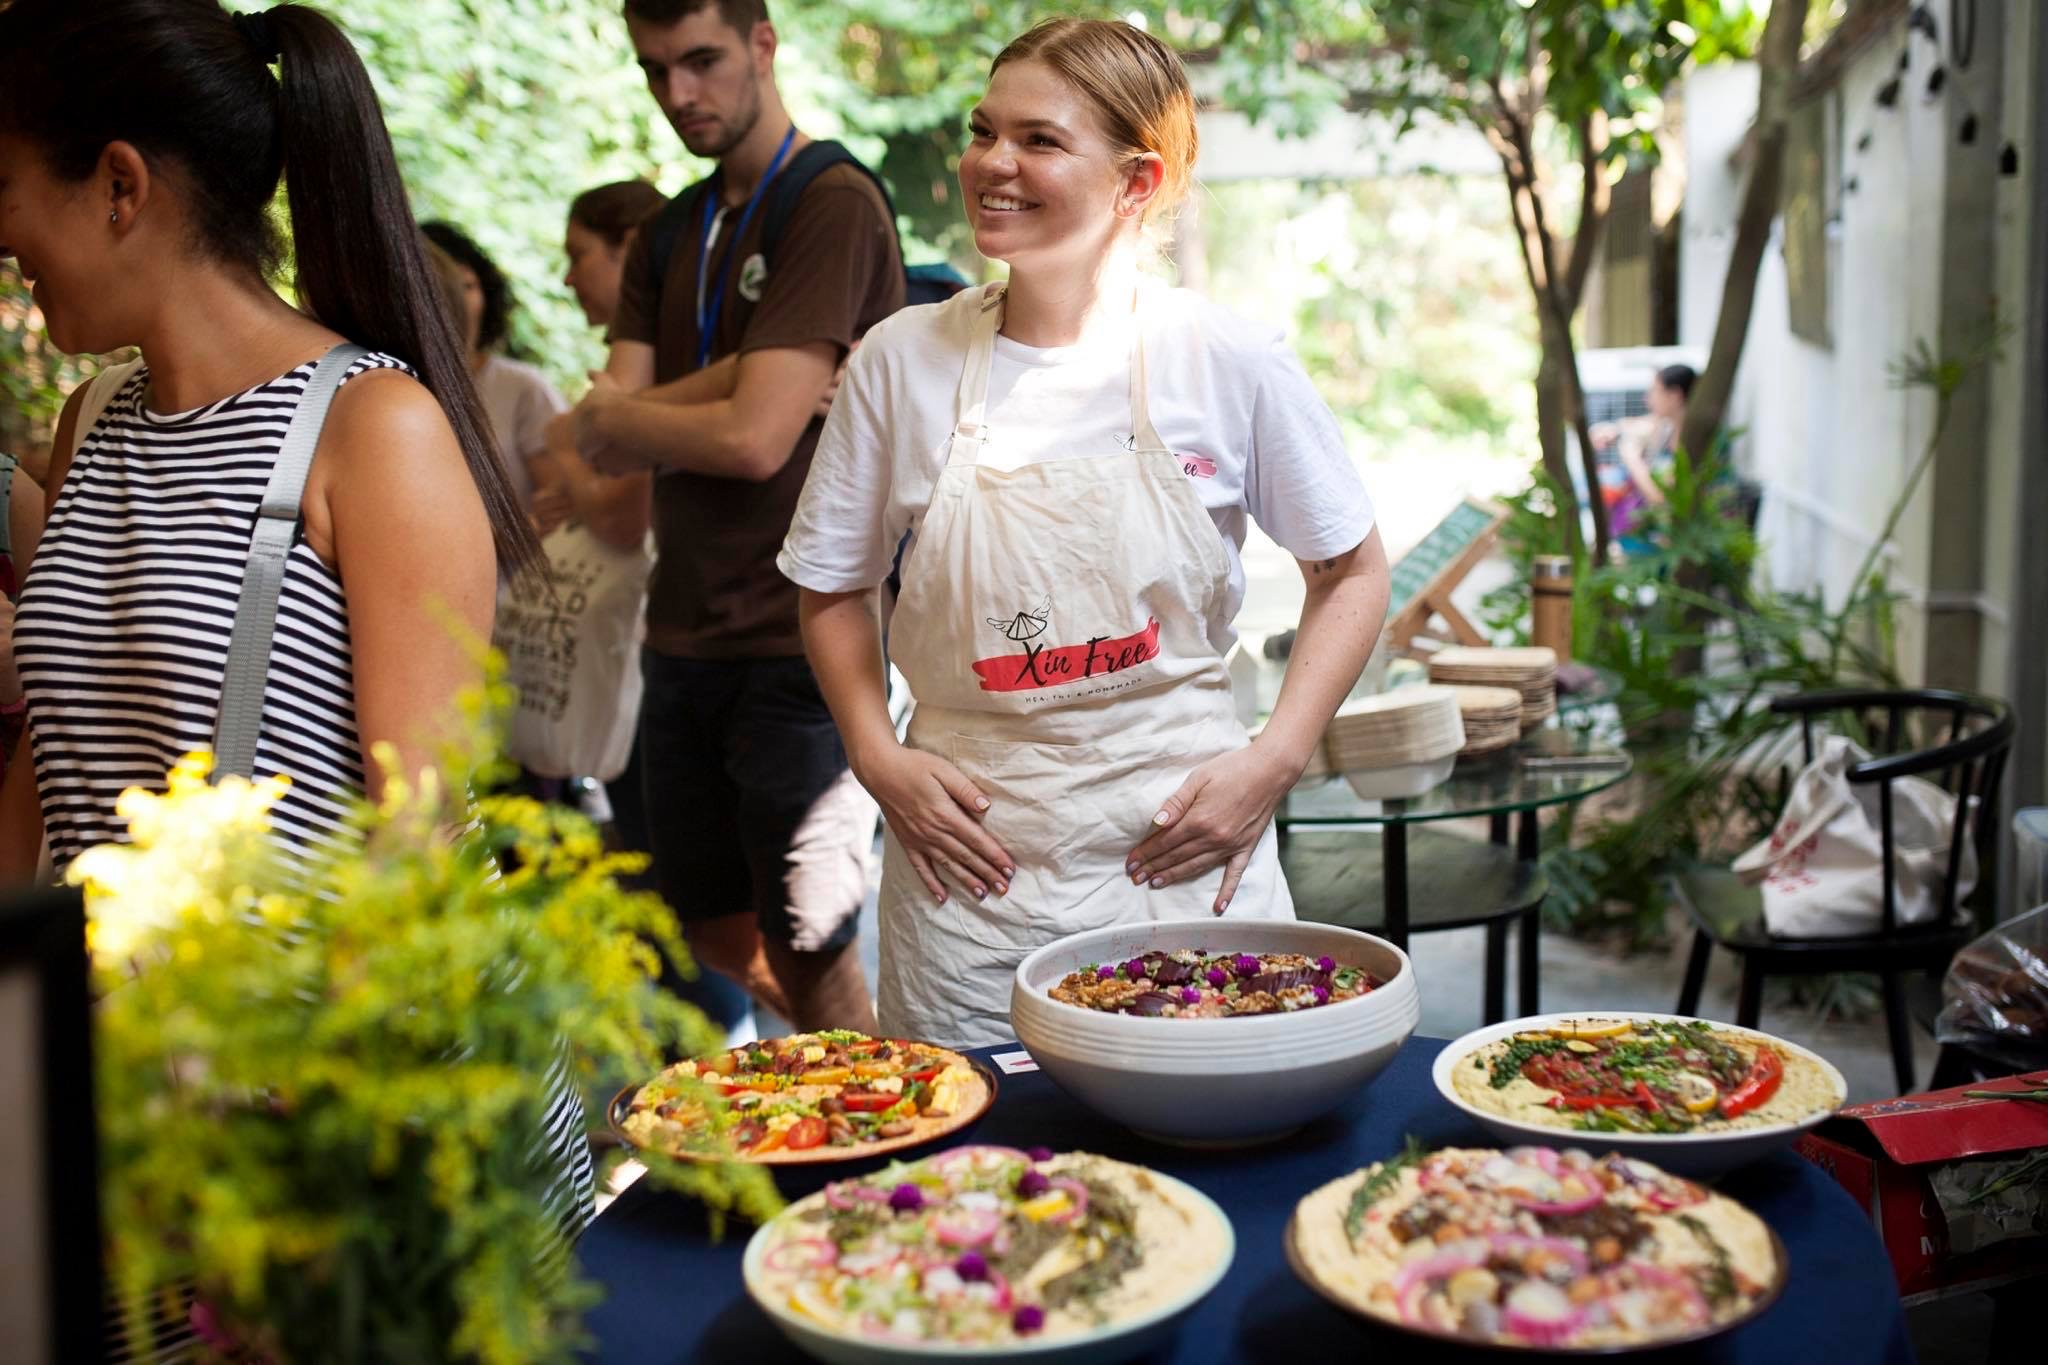 How to Own a Vegan Catering Business in Vietnam with Xin Free